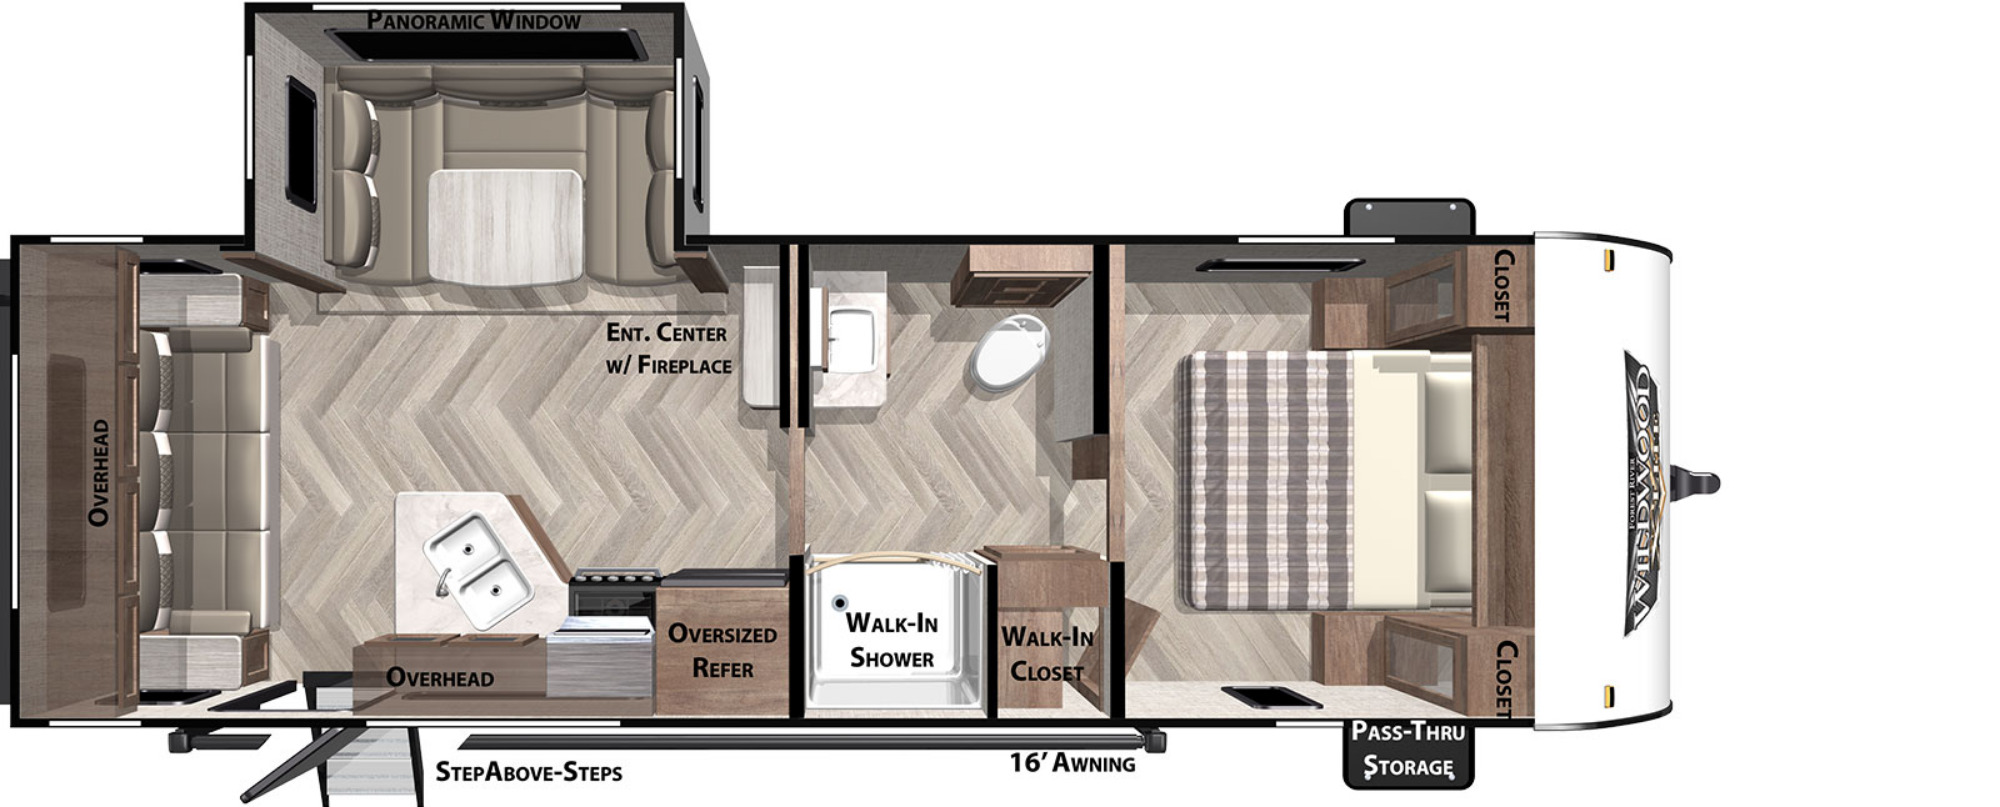 View Floor Plan for 2021 FOREST RIVER WILDWOOD X-LITE 24RLXL